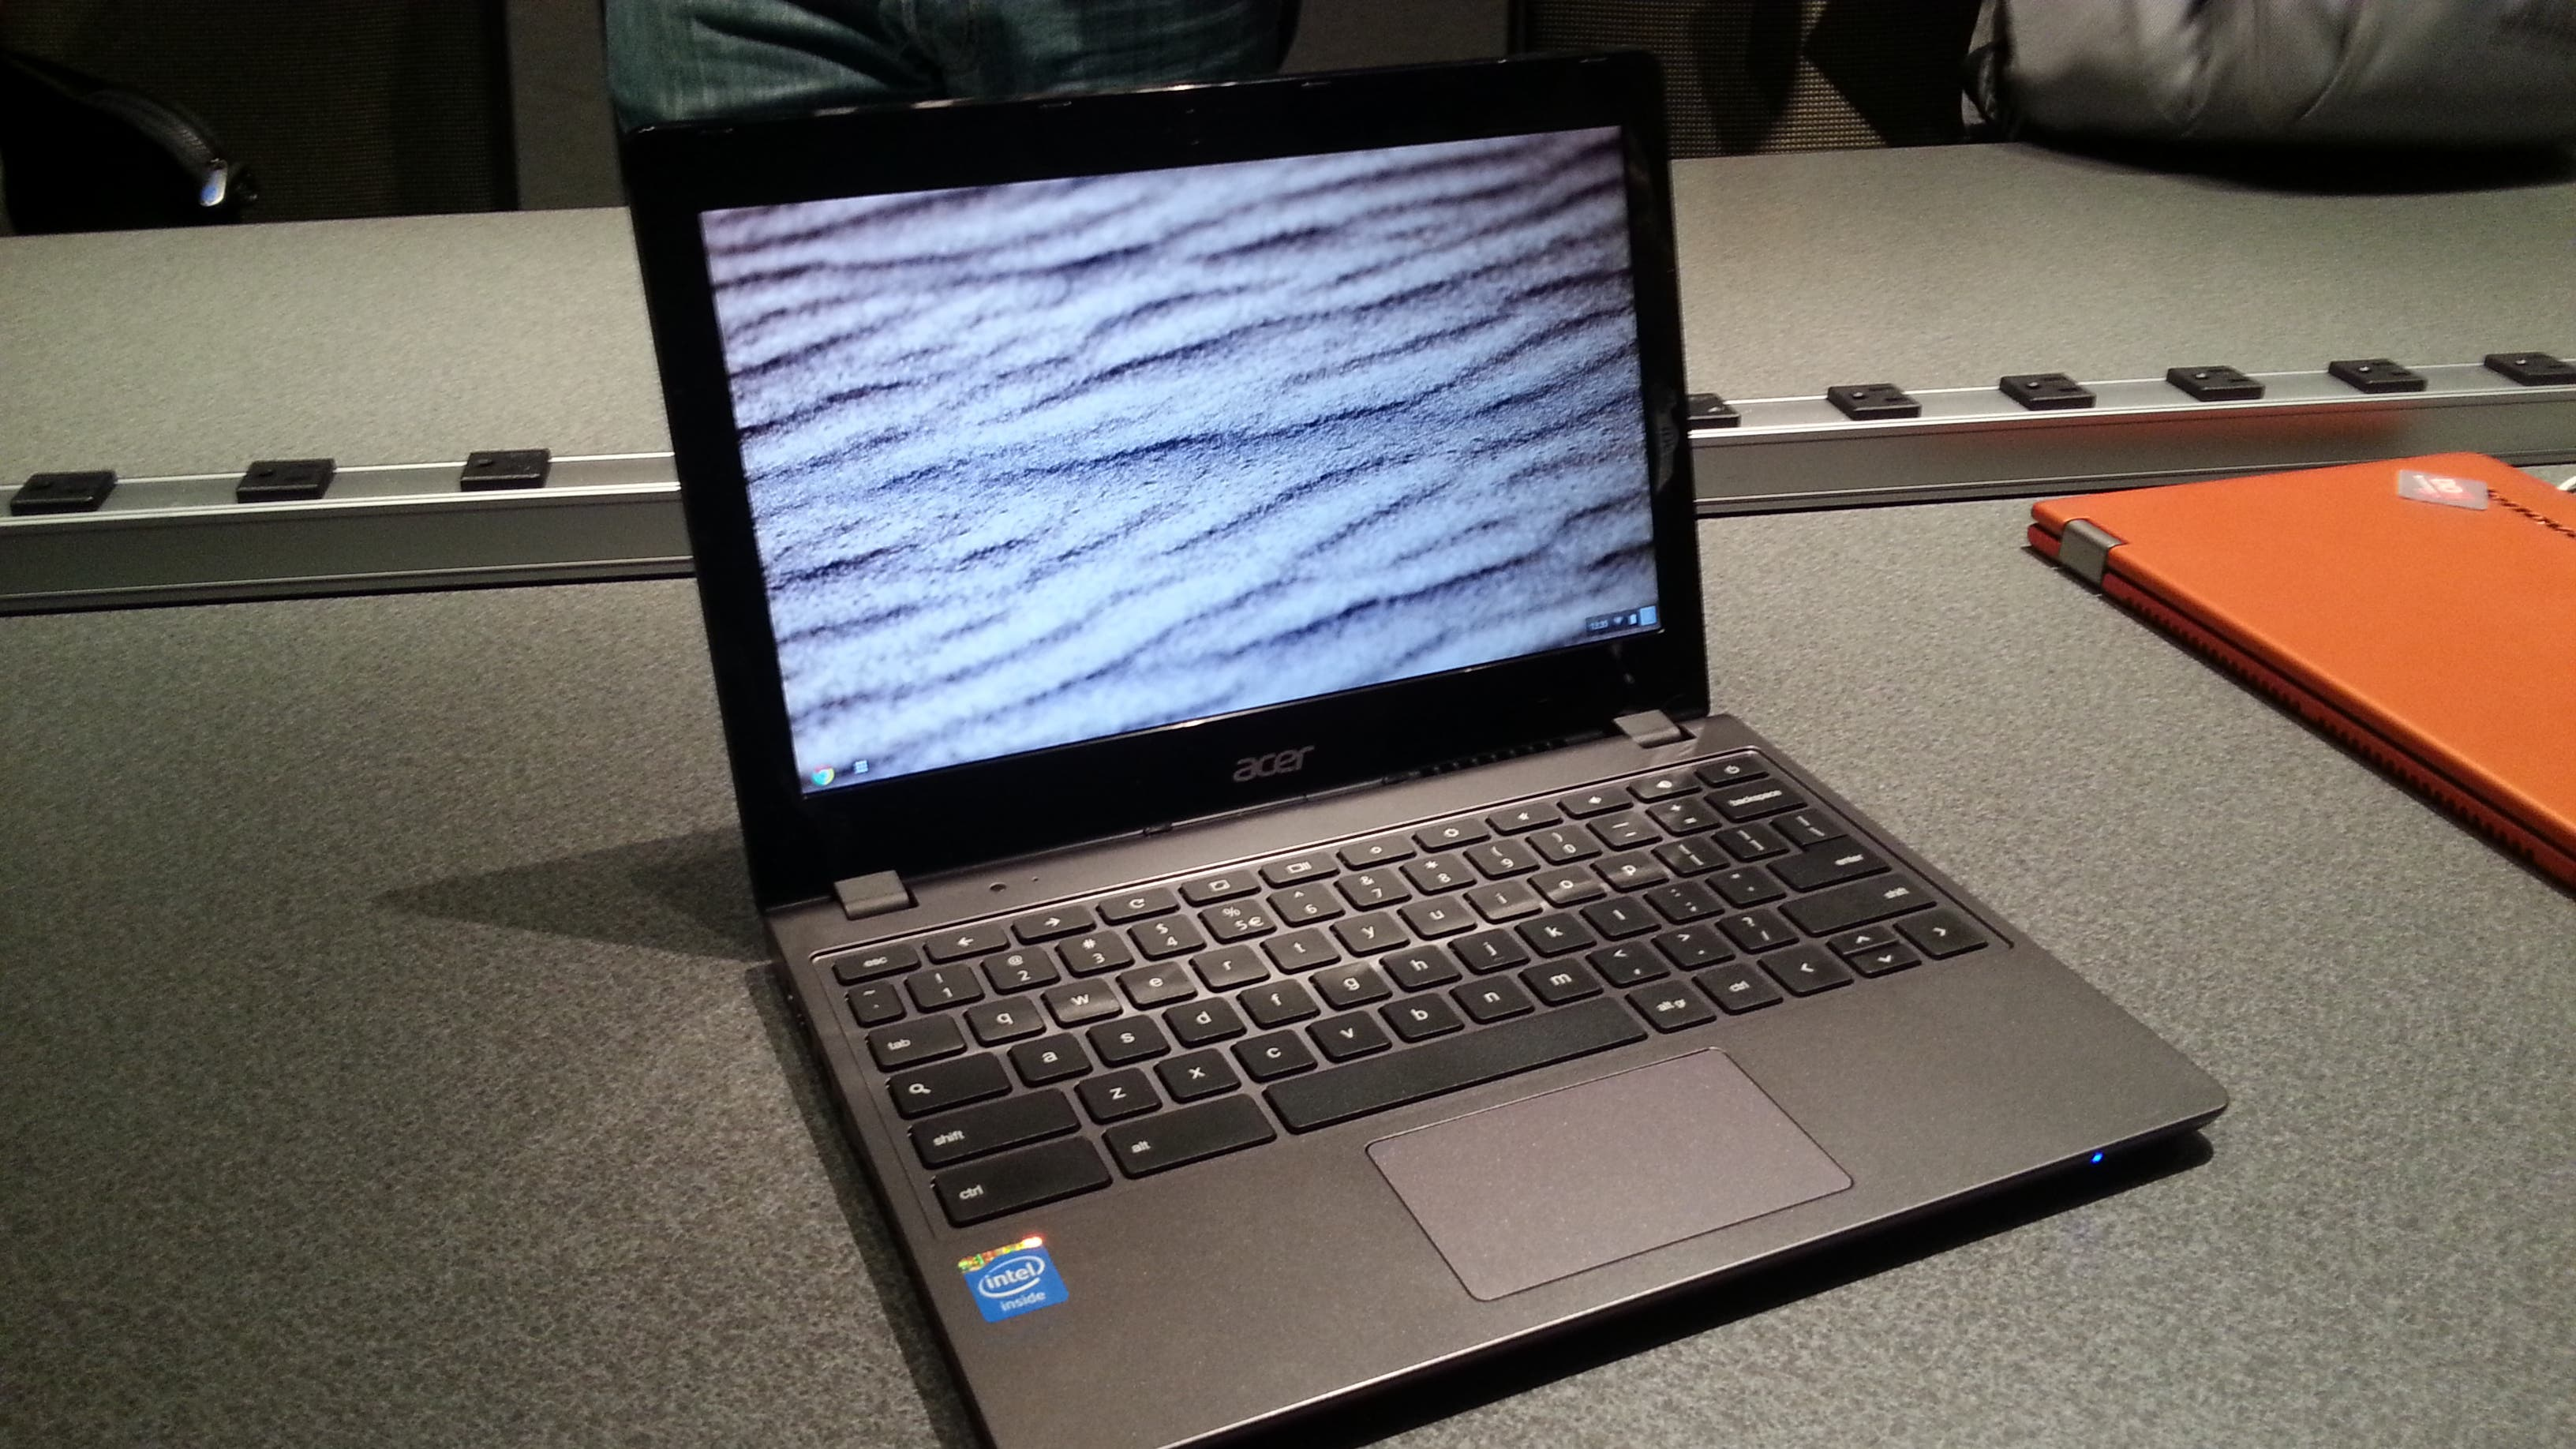 Acer Chromebook Hands On – 11.6-inch Intel Haswell, unter 1kg! (Video)